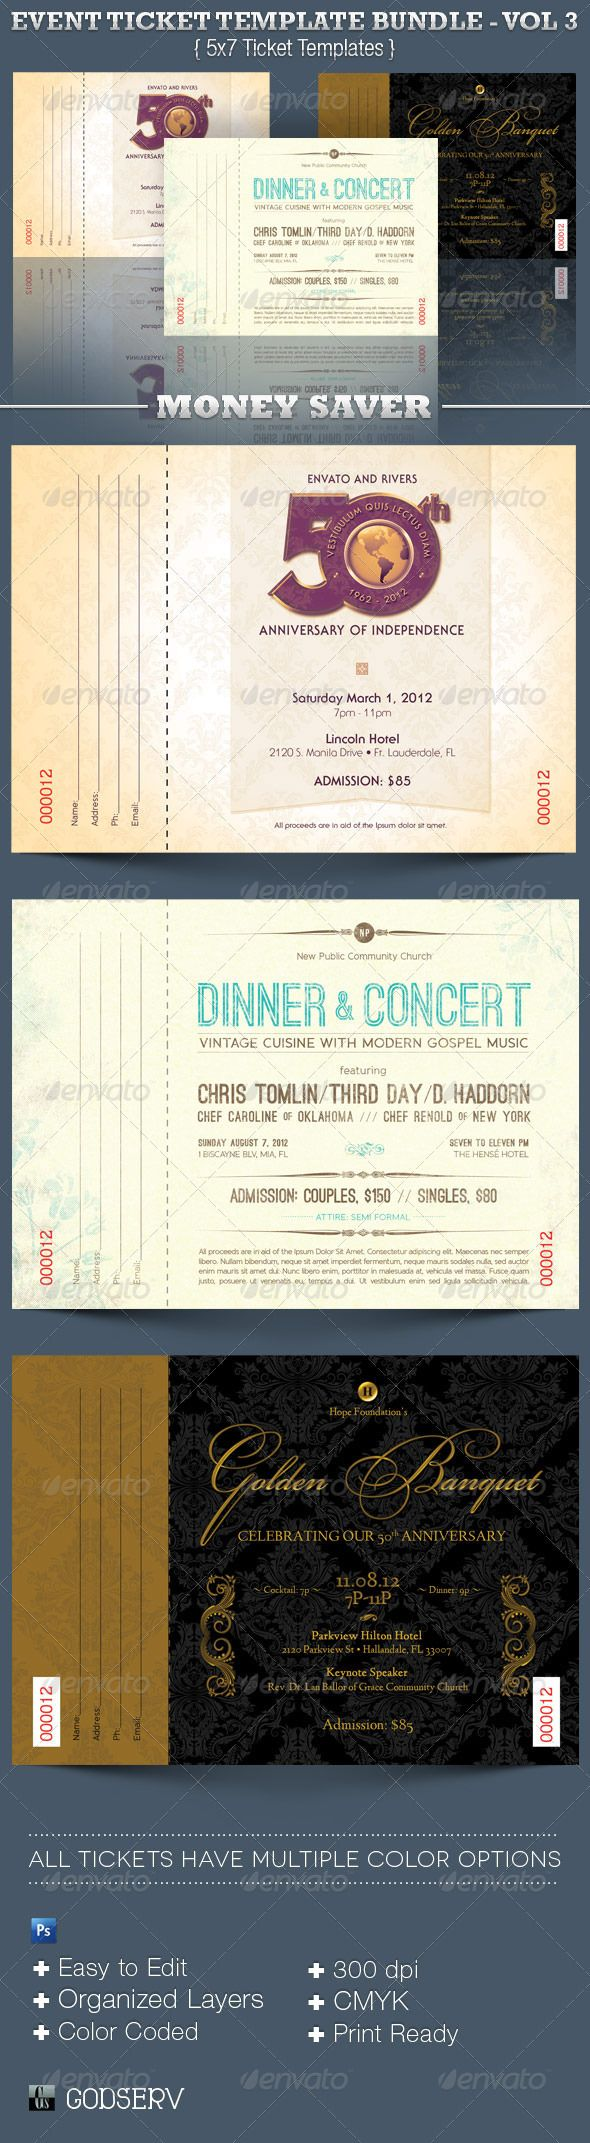 event ticket template concert tickets event tickets church events